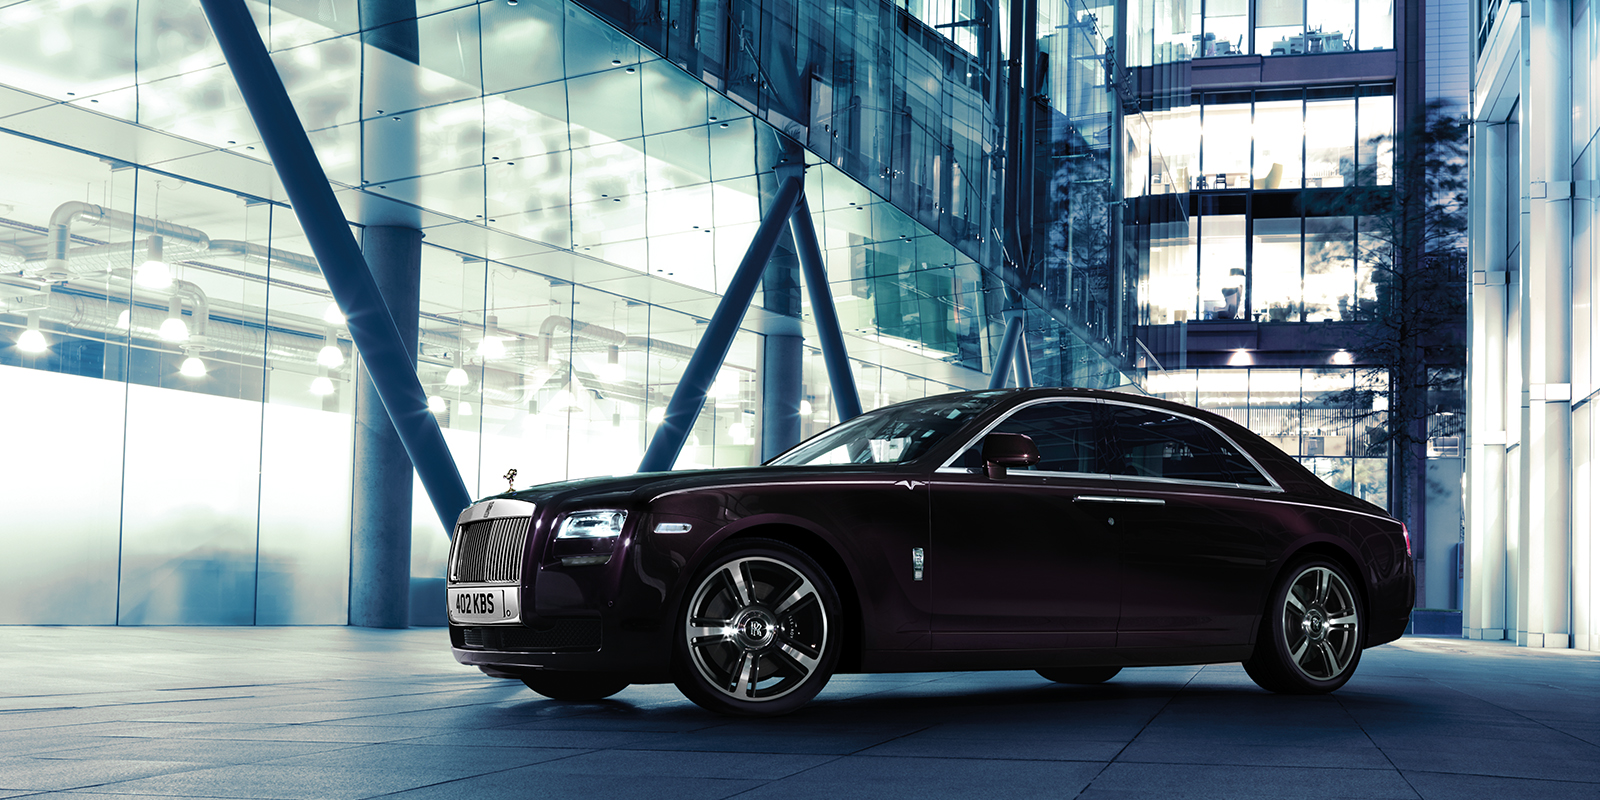 1600x800_Roll Royce Vspec F34 static_V4